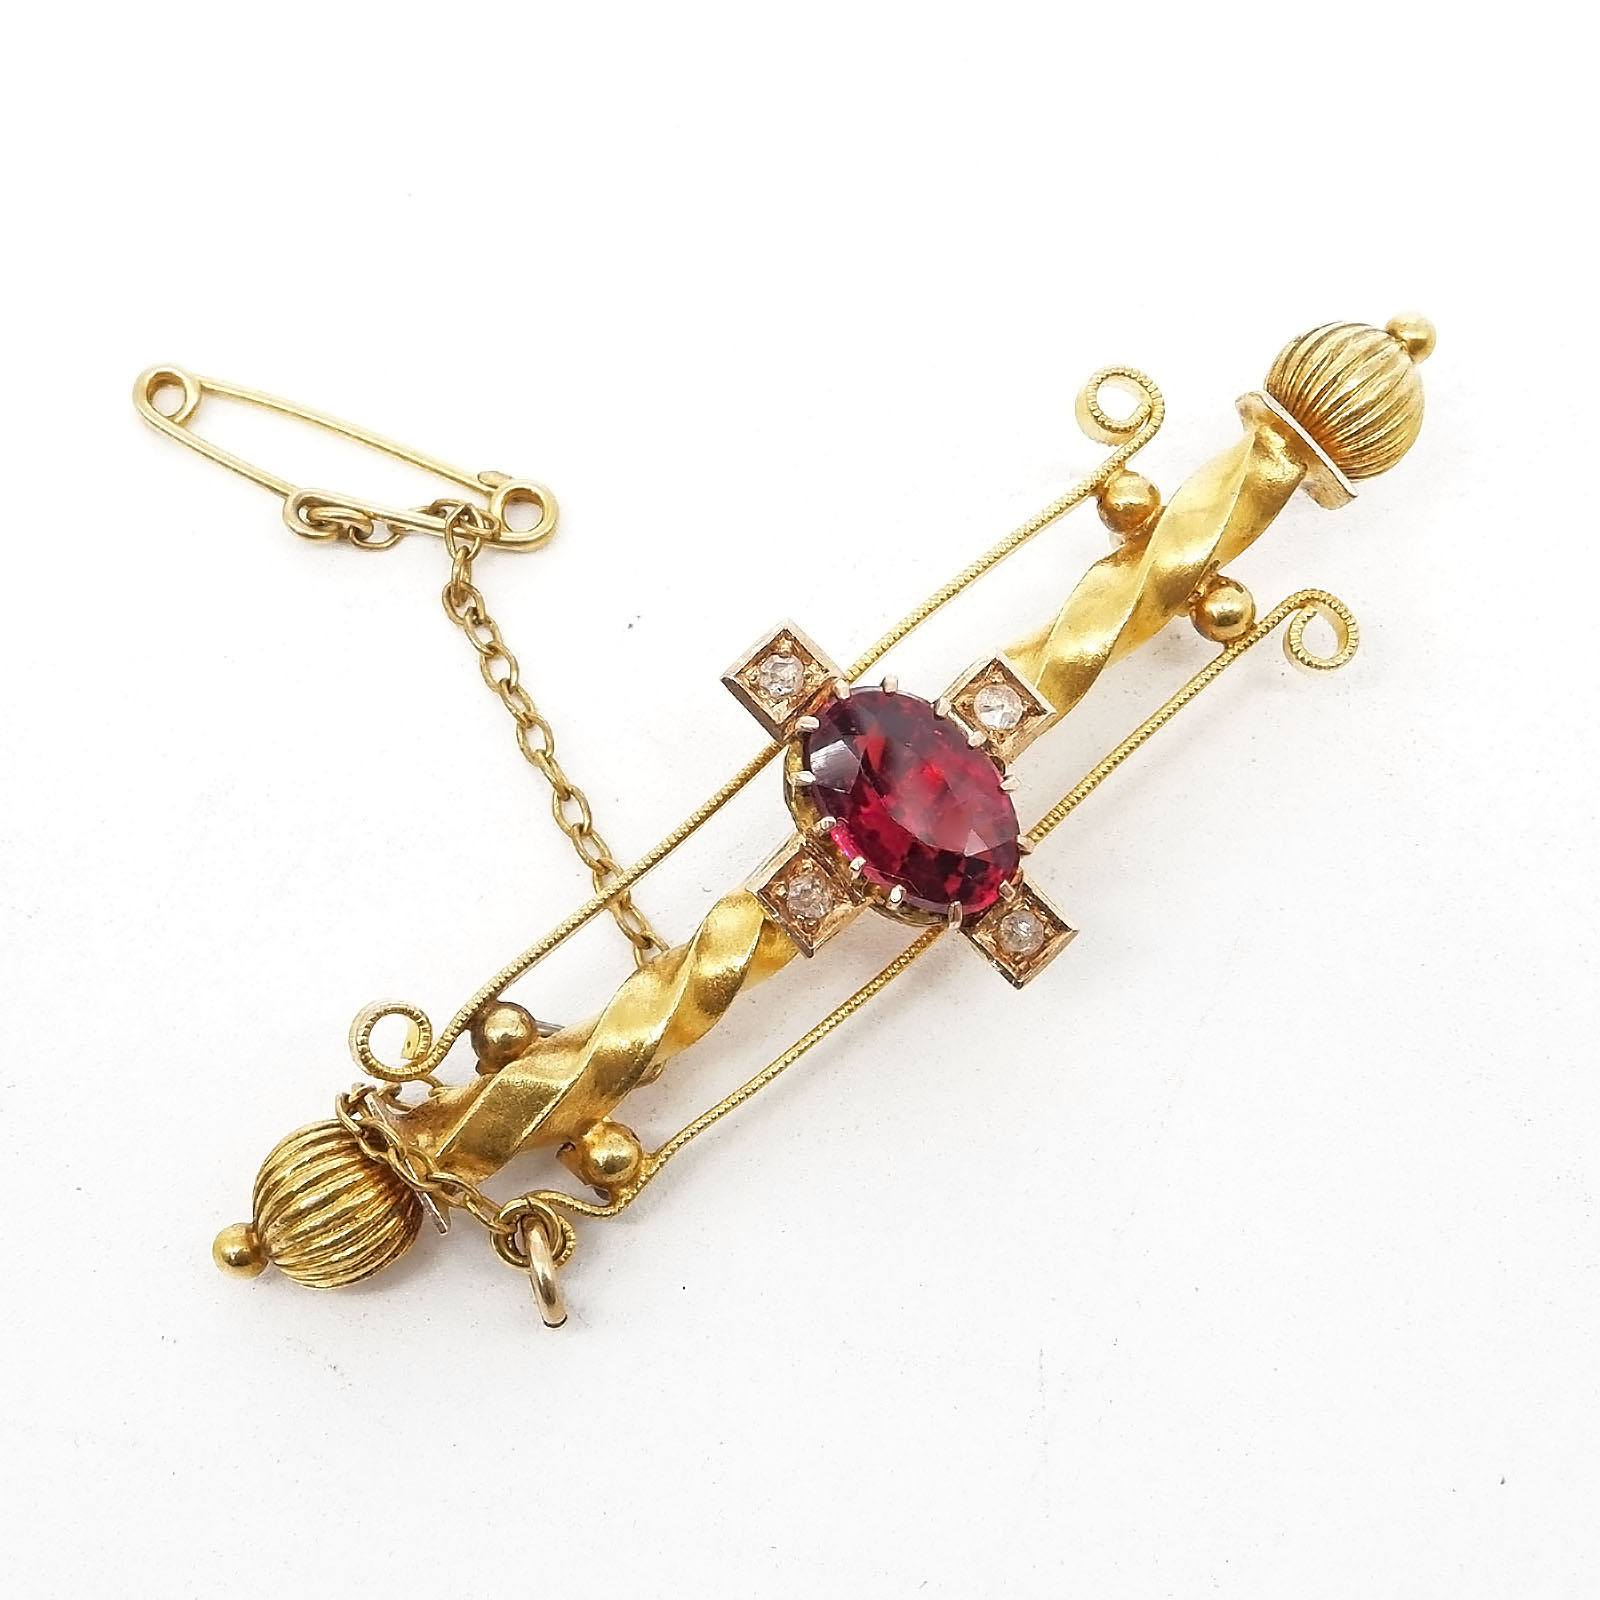 'Antique 15ct Yellow Gold Bar Brooch with at Centre Oval Facetted Garnet Topped Doublet and Four Rose Cut Diamonds Set in a Cross, 5.9g'